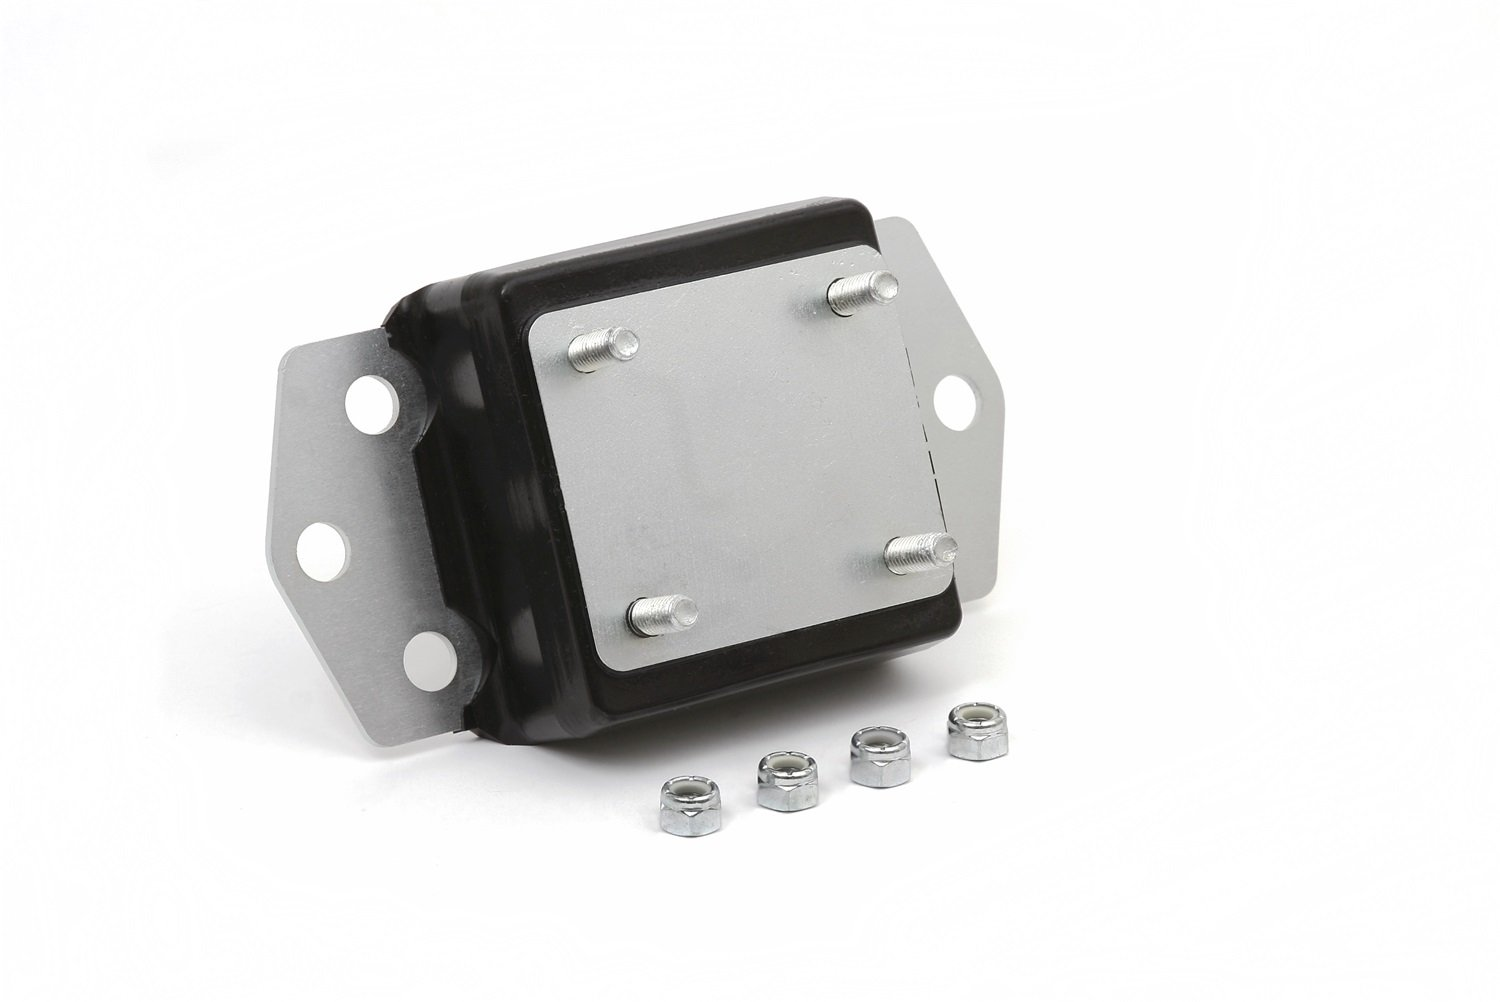 Daystar KJ01010BK Transmission Mount for 4.0 Liter Transmission Engine